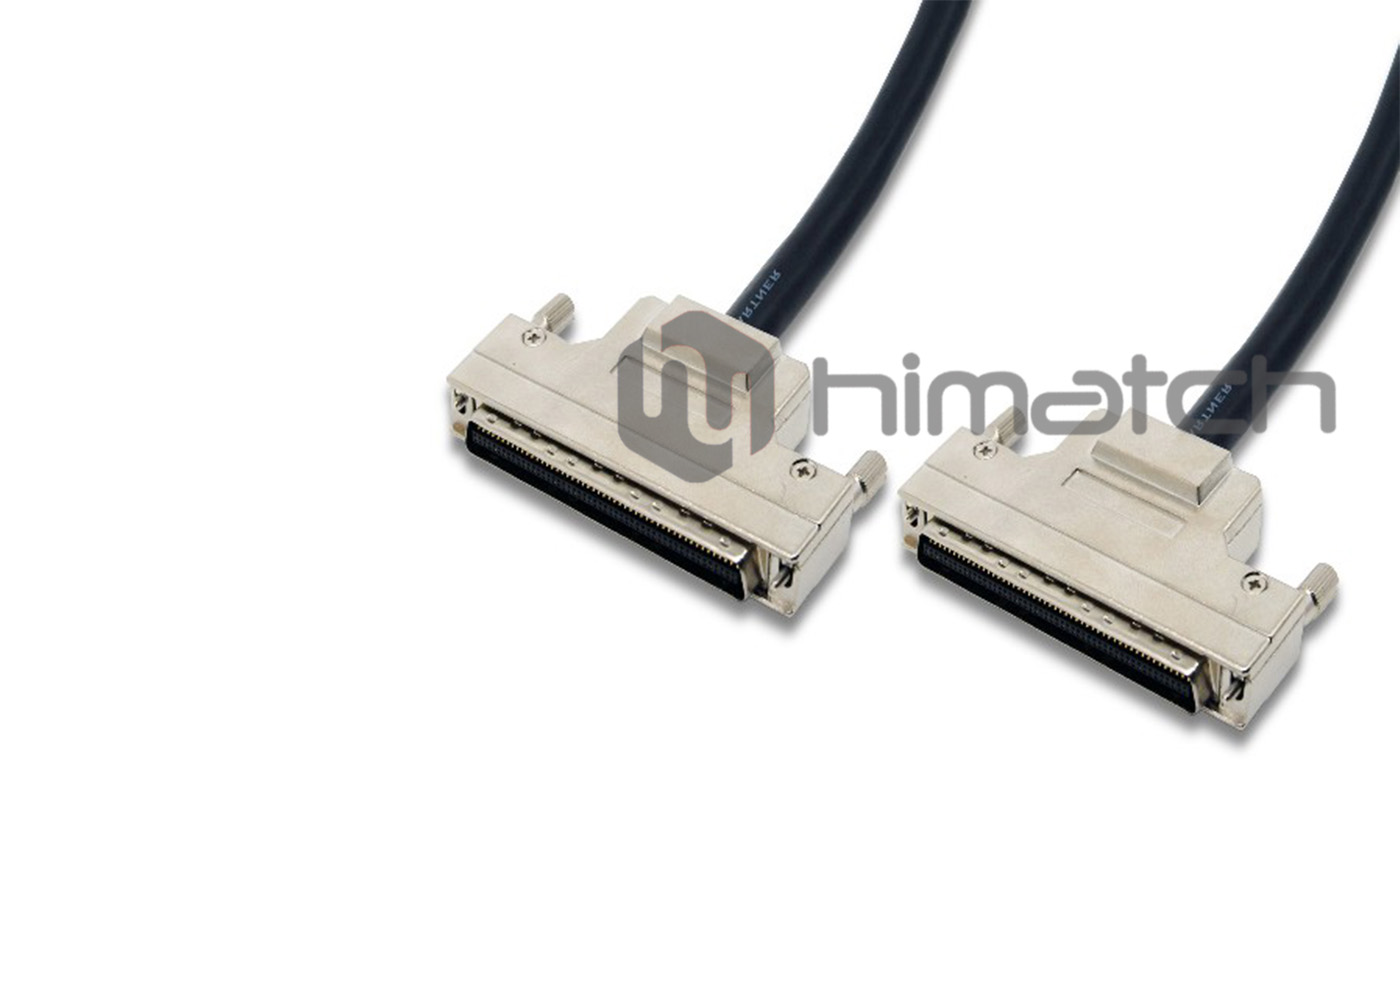 MDR 100pin Shielded Cable with Metal Shell and Thumbscrew